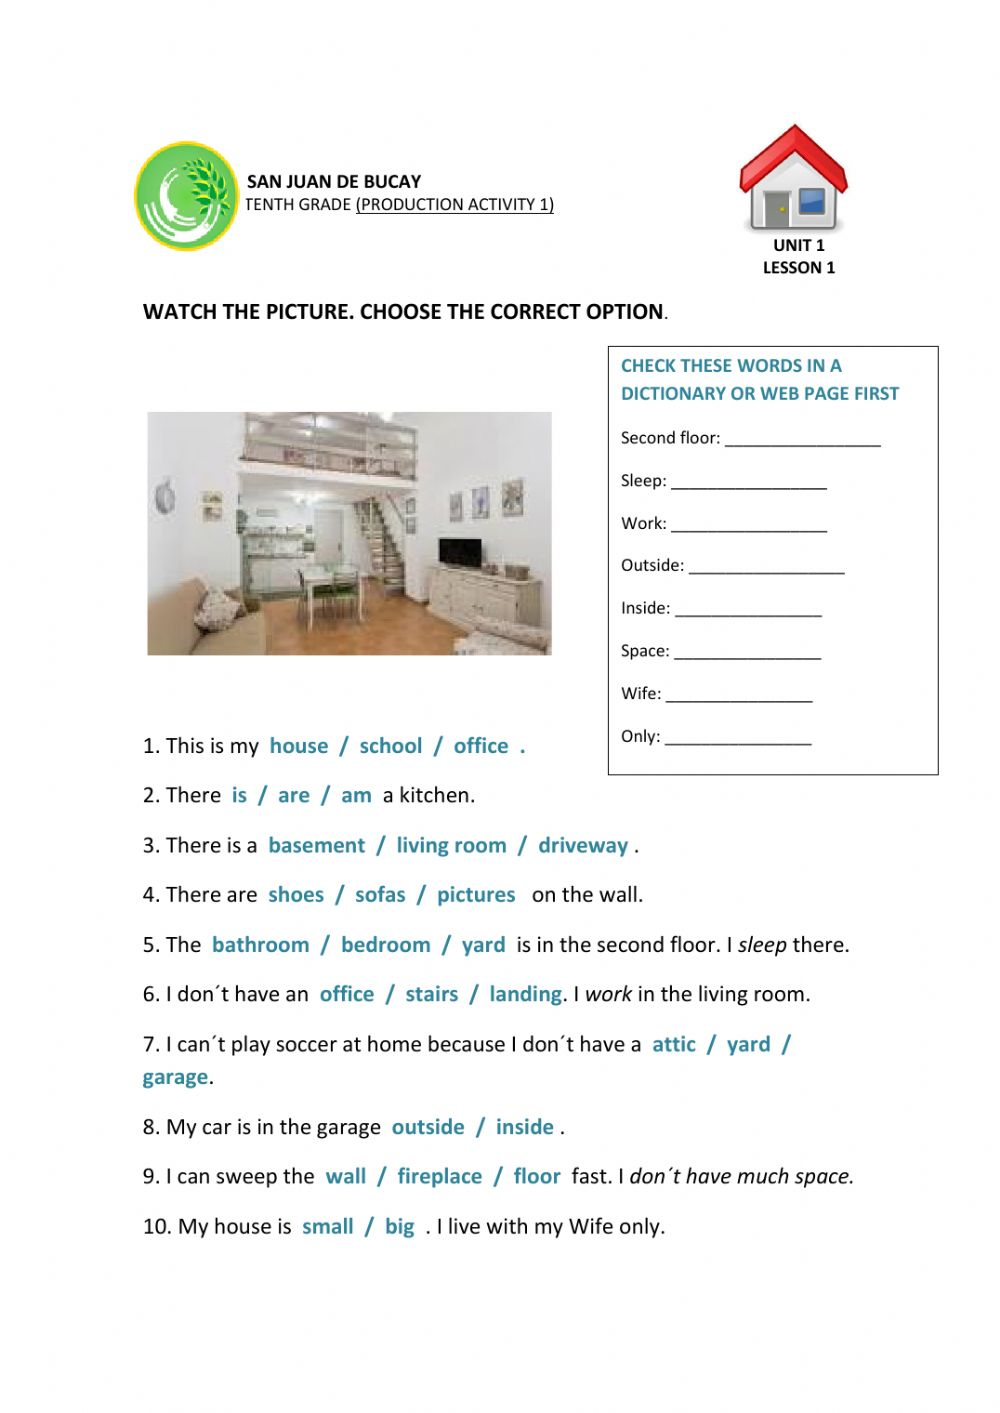 medium resolution of Parts of the house exercise for Grade 8-10